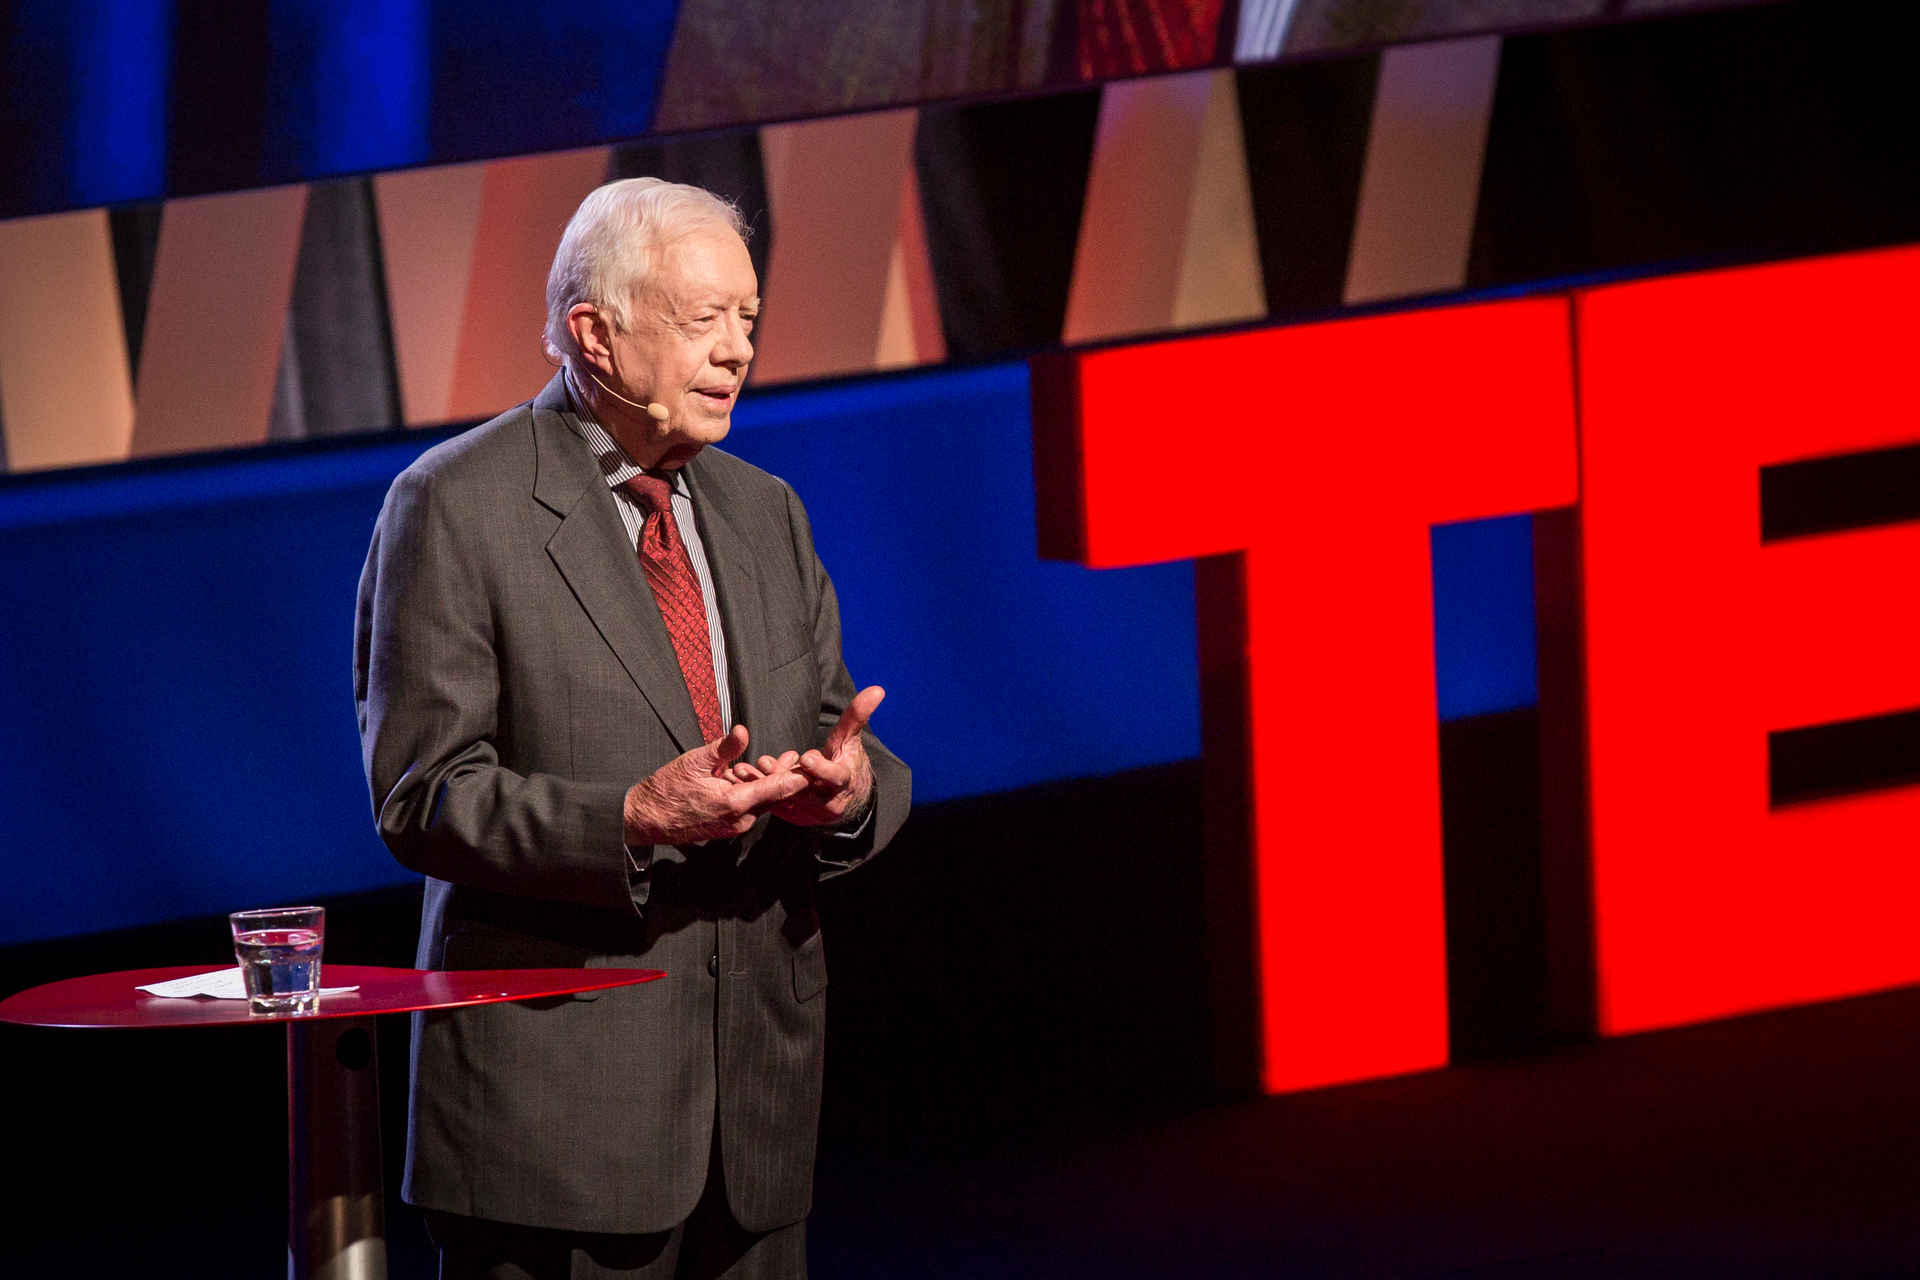 President Jimmy Carter speaks at TEDWomen2015 - Momentum, Session 4, May 28, 2015, Monterey Conference Center, Monterey, California, USA. Photo: Marla Aufmuth/TED